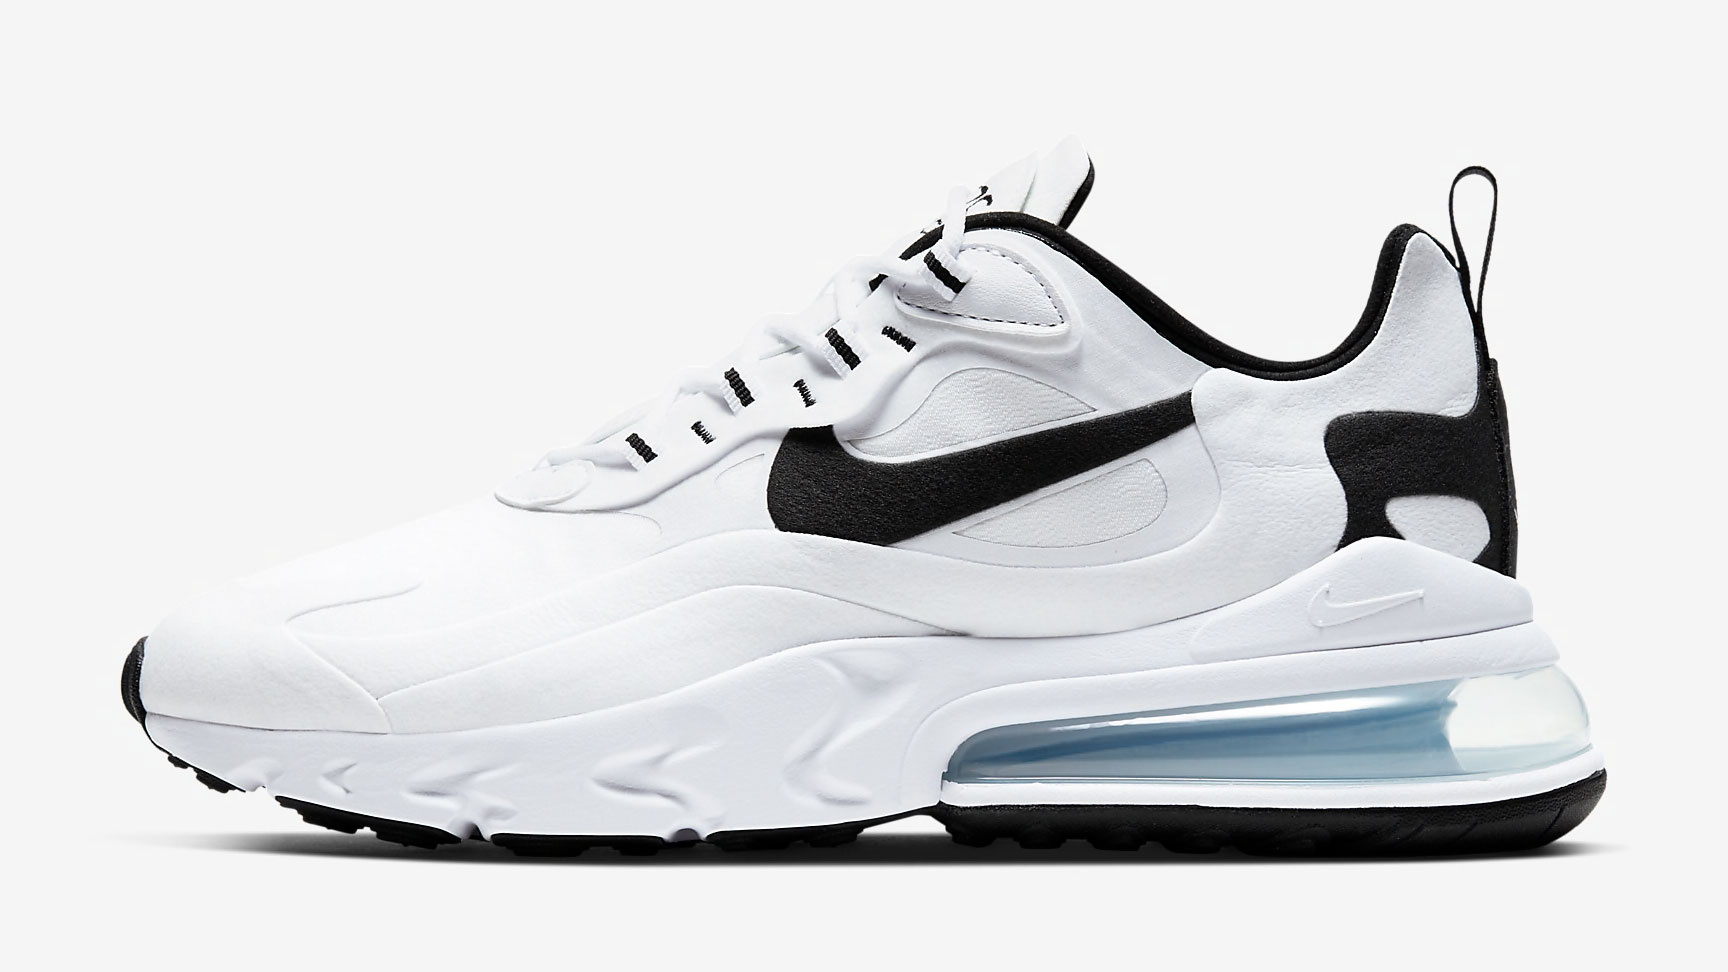 nike-air-max-270-react-white-black-release-date